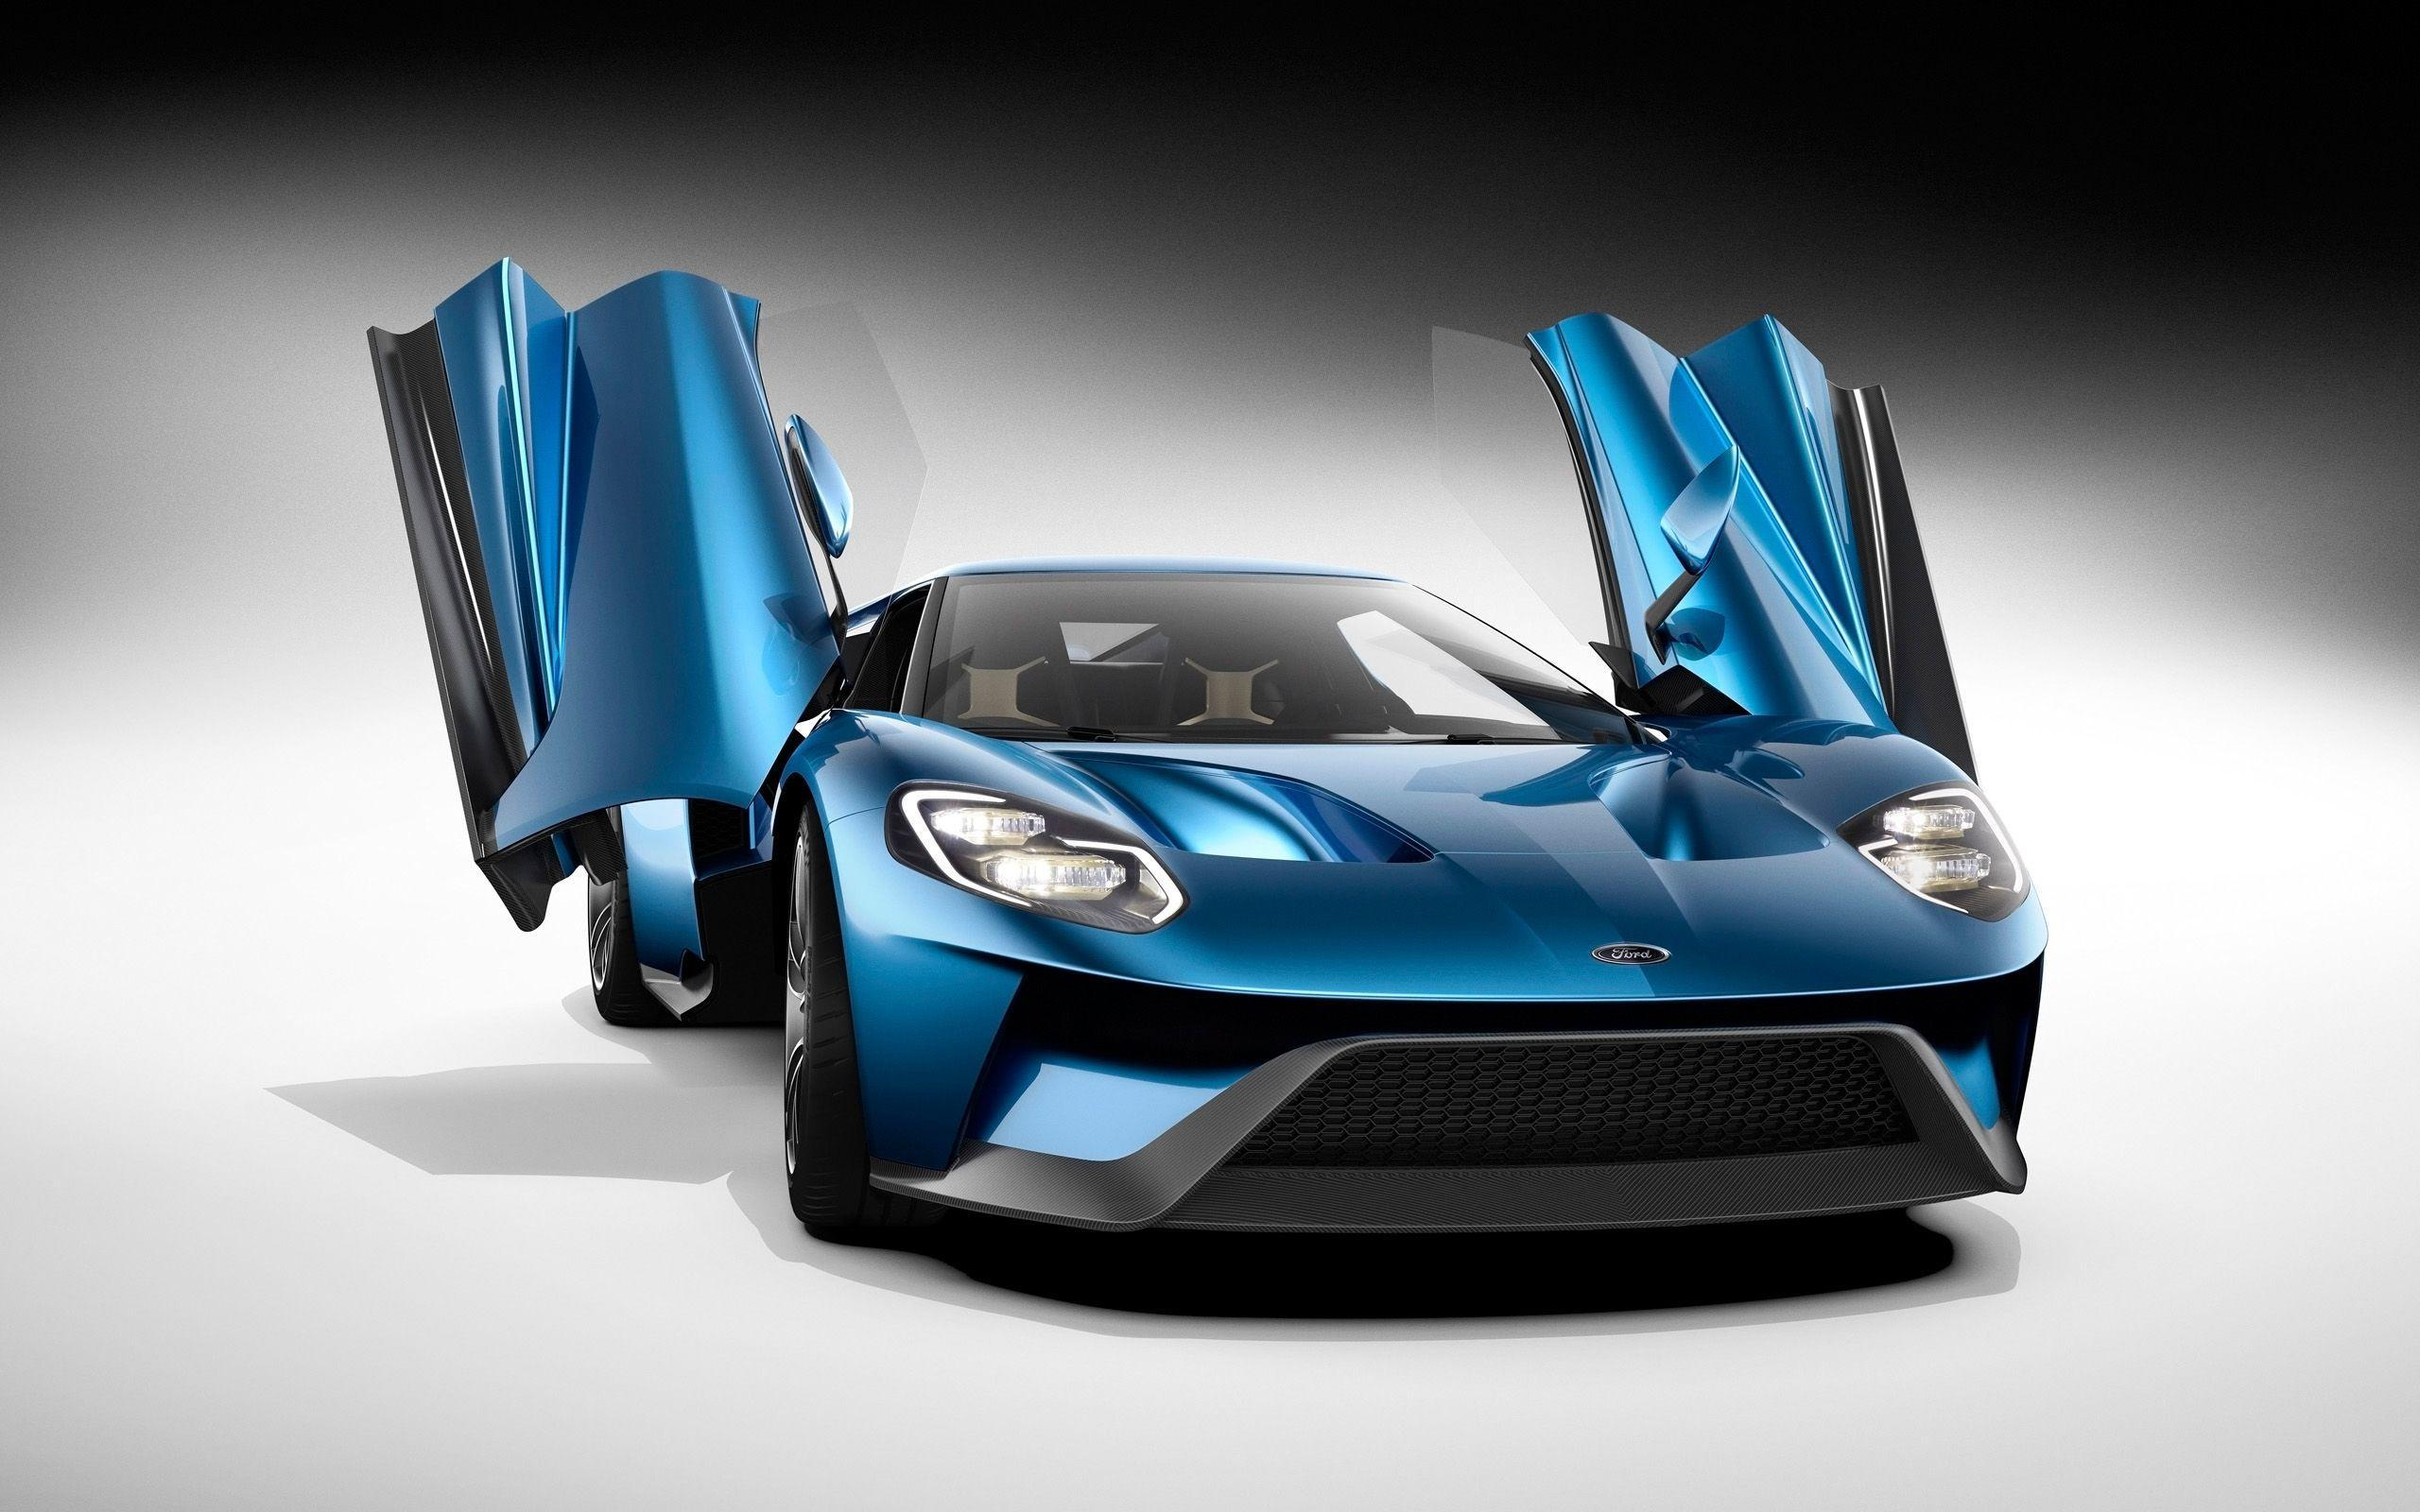 2016, Ford GT 2, Front View, Blue Car, Supercar, Cool